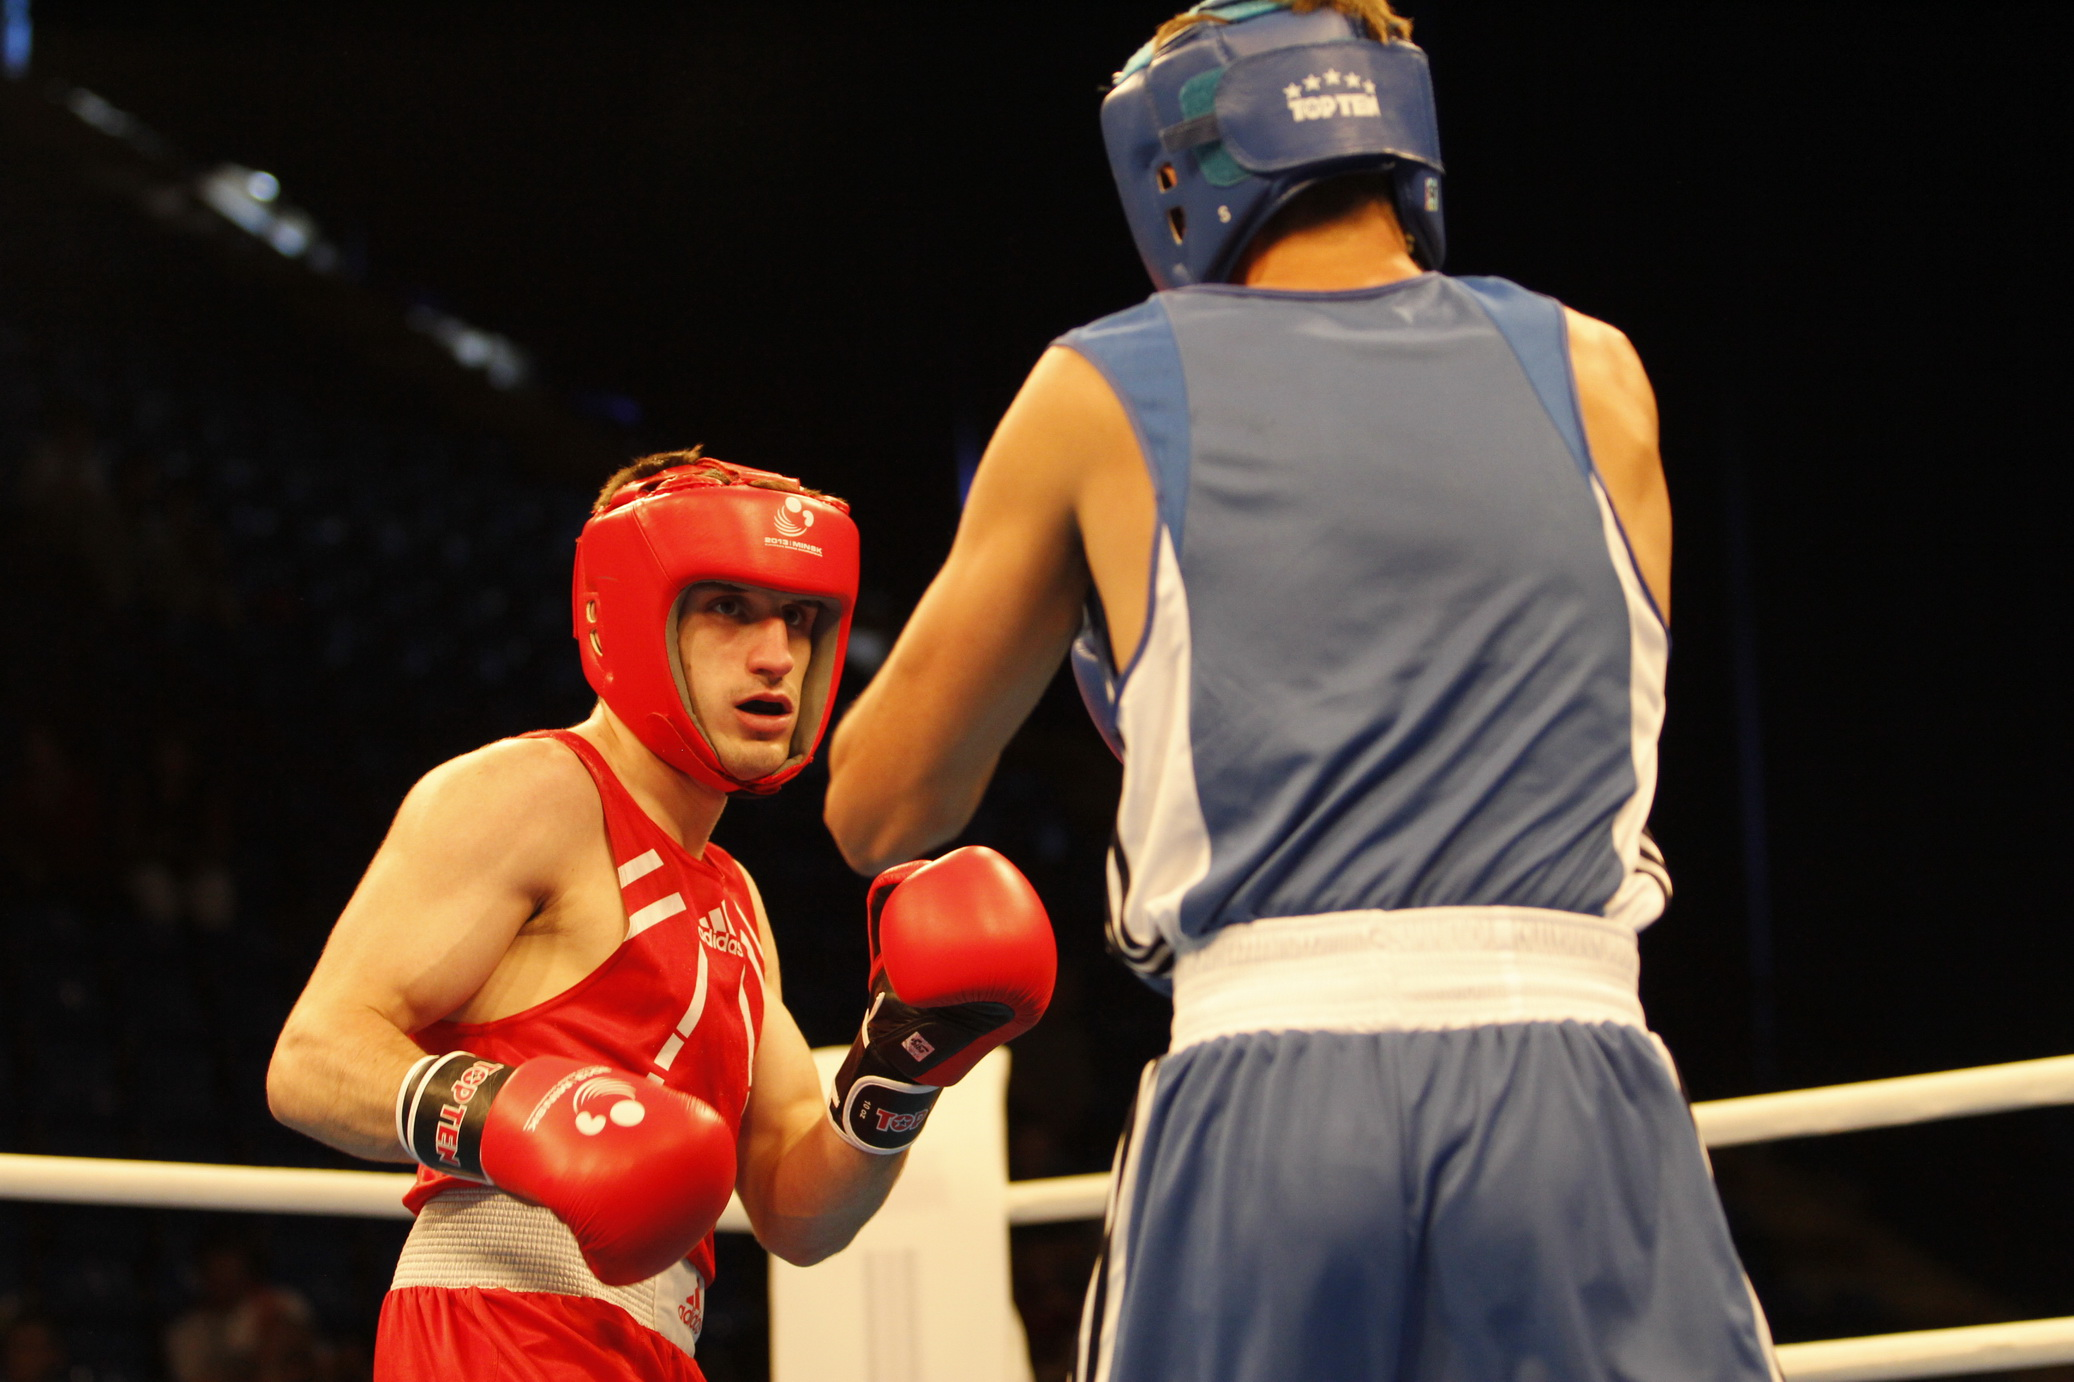 Euro Boxen Minsk 2013 2 Day Afternoon Sessions Results 10 Matches